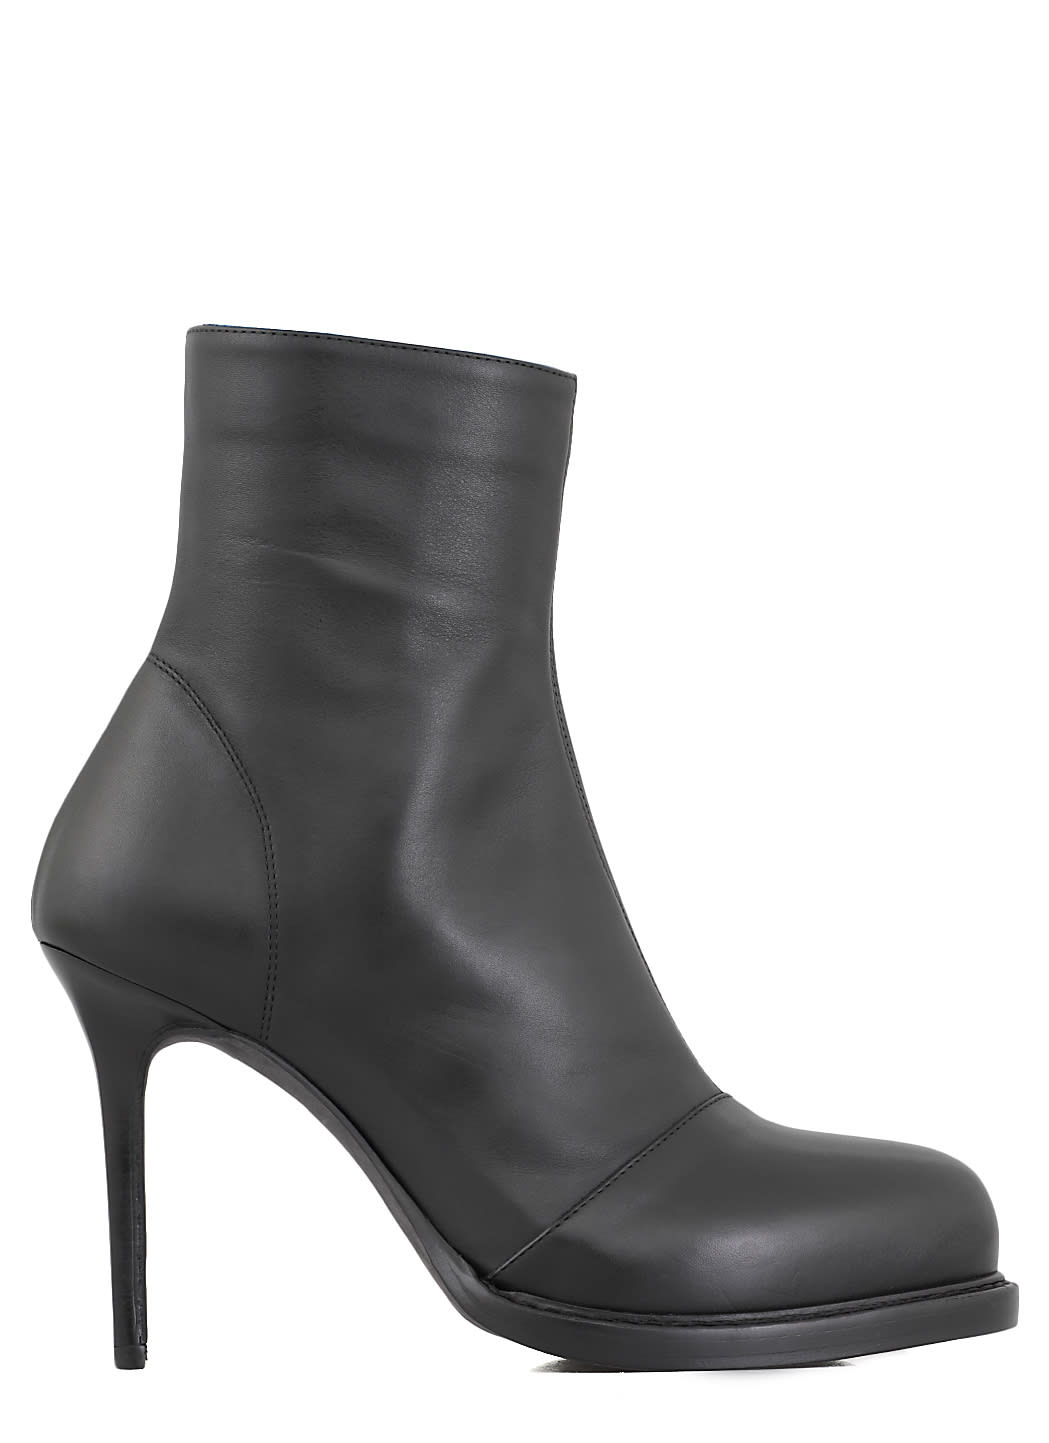 Ann Demeulemeester HIGH-HEEL ANKLE LENGHT BOOTS